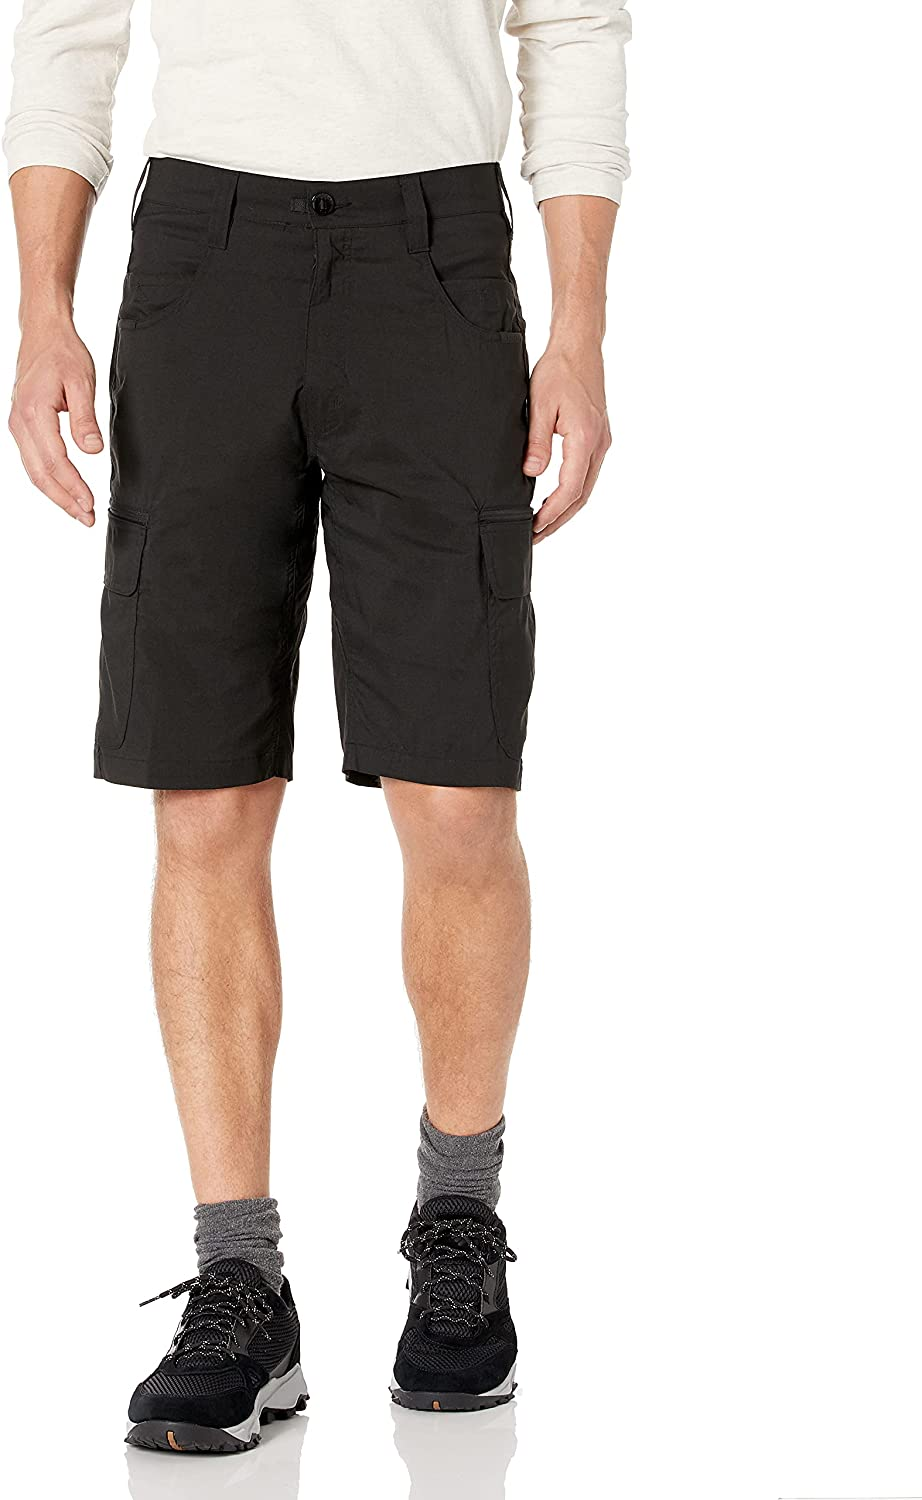 Propper low-pricing Men's Summerweight Shorts Tactical Cheap mail order shopping